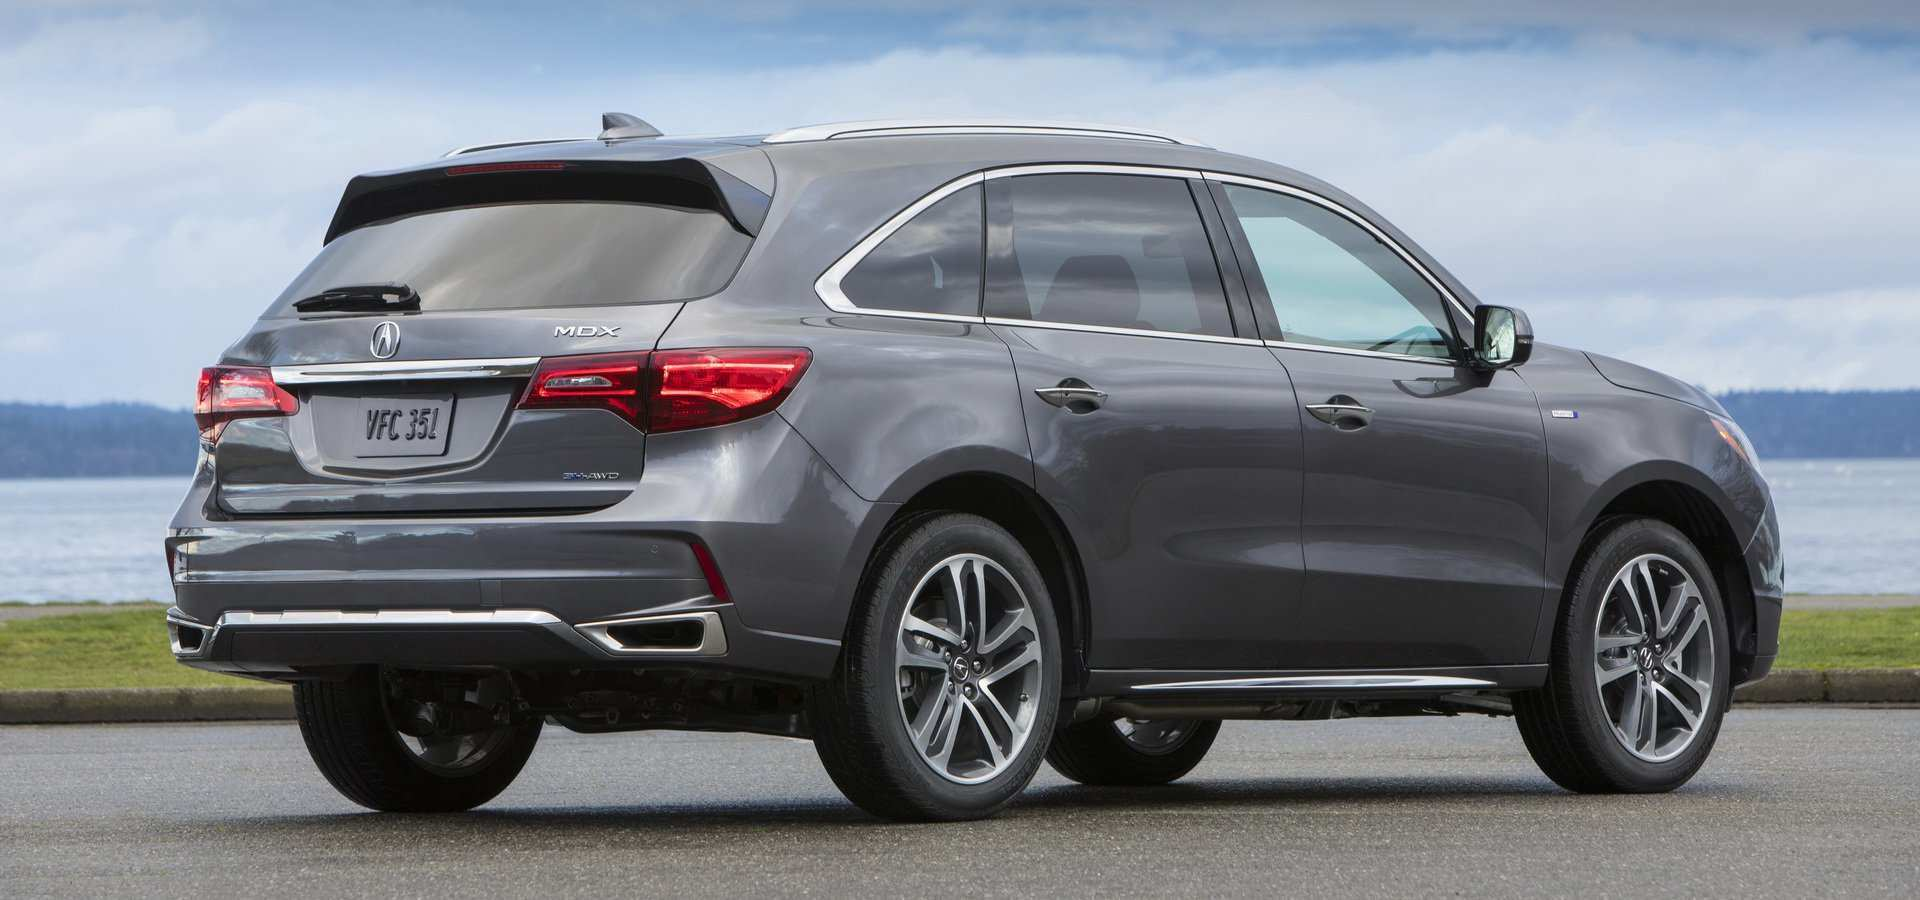 47 New Acura Mdx 2020 Performance